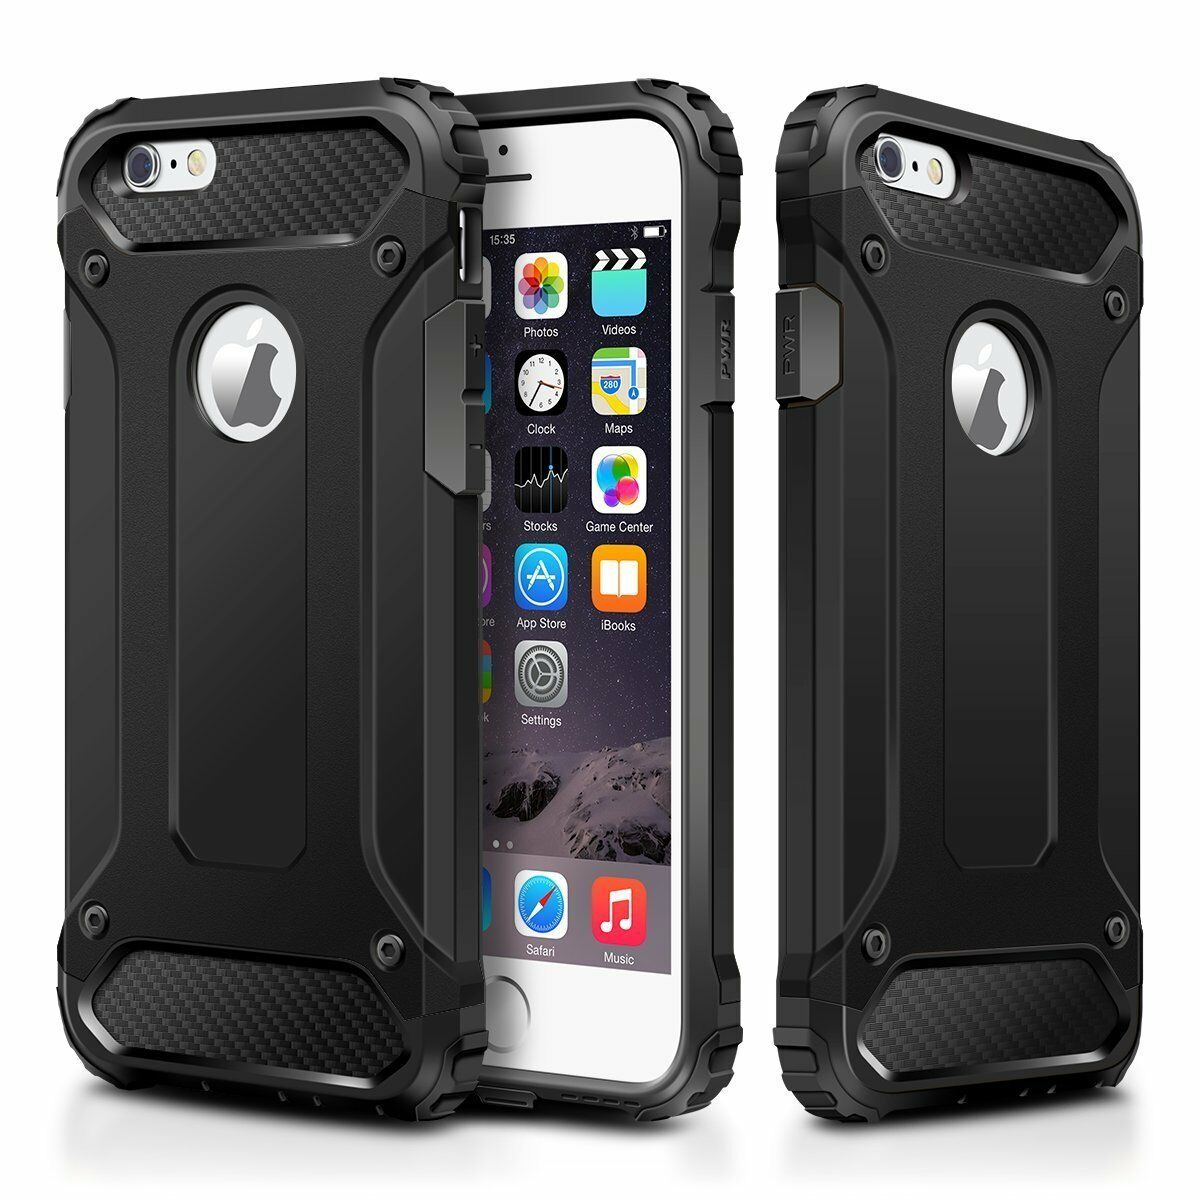 Case iPhone 6 6S 7 8 Plus Xr X Xs Max - Heavy Duty Hybrid Shockproof Armor Cover